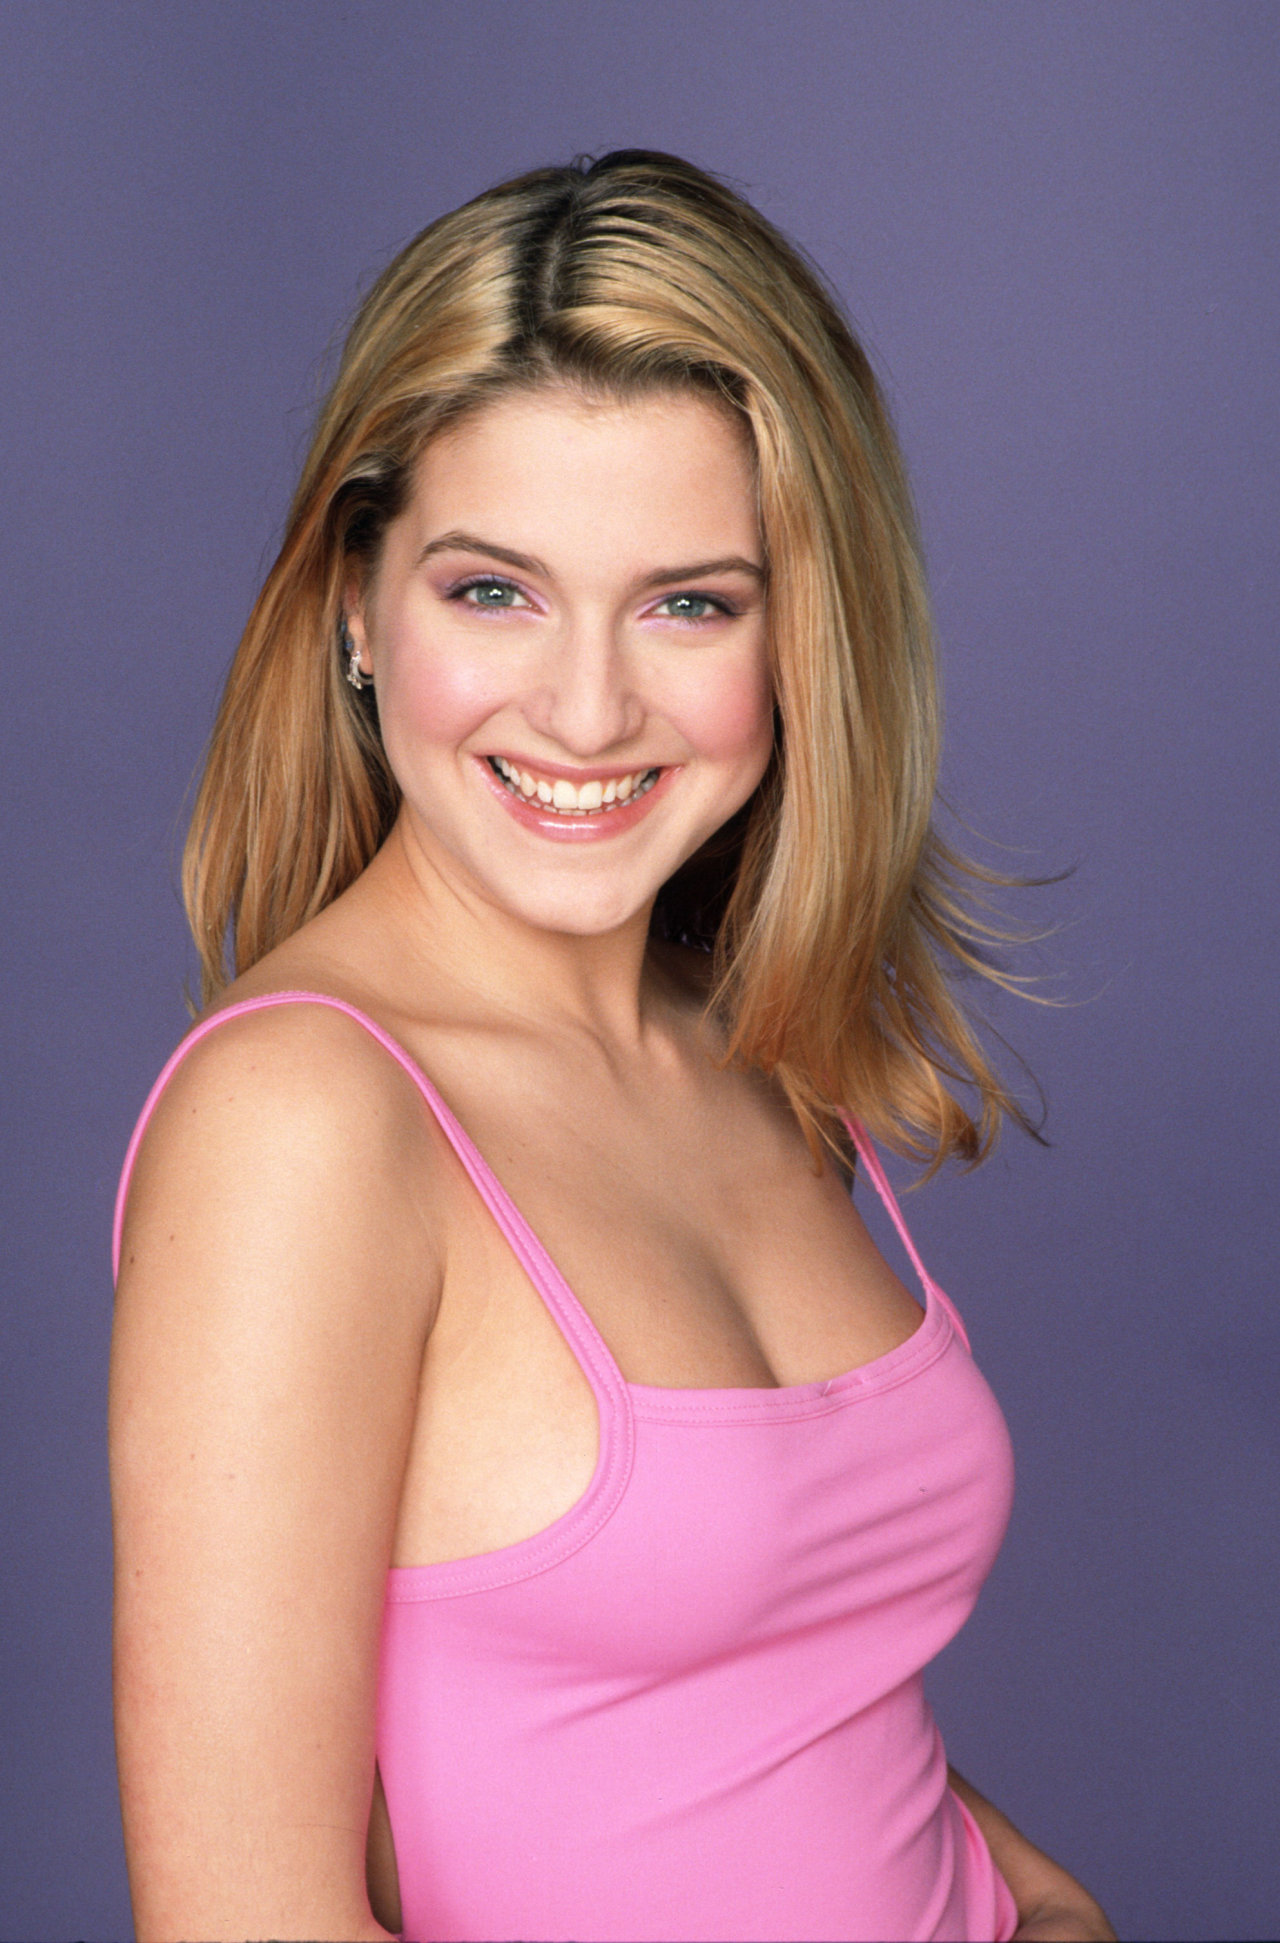 Celebrity Jeanette Biedermann Wallpapers. Pictures, photos